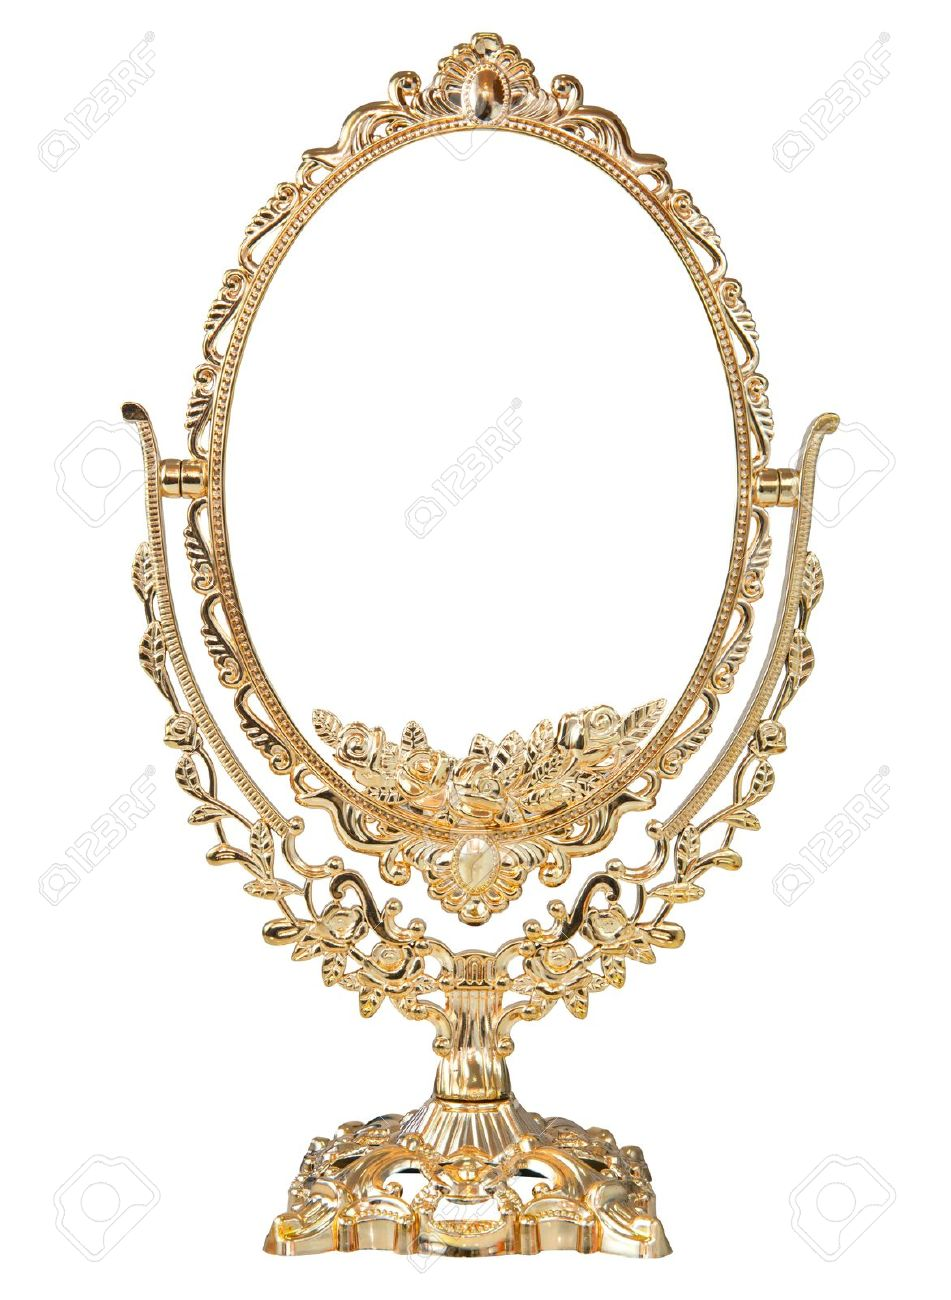 Antique baroque brass gold frame and mirror isolated on white background - 18269088